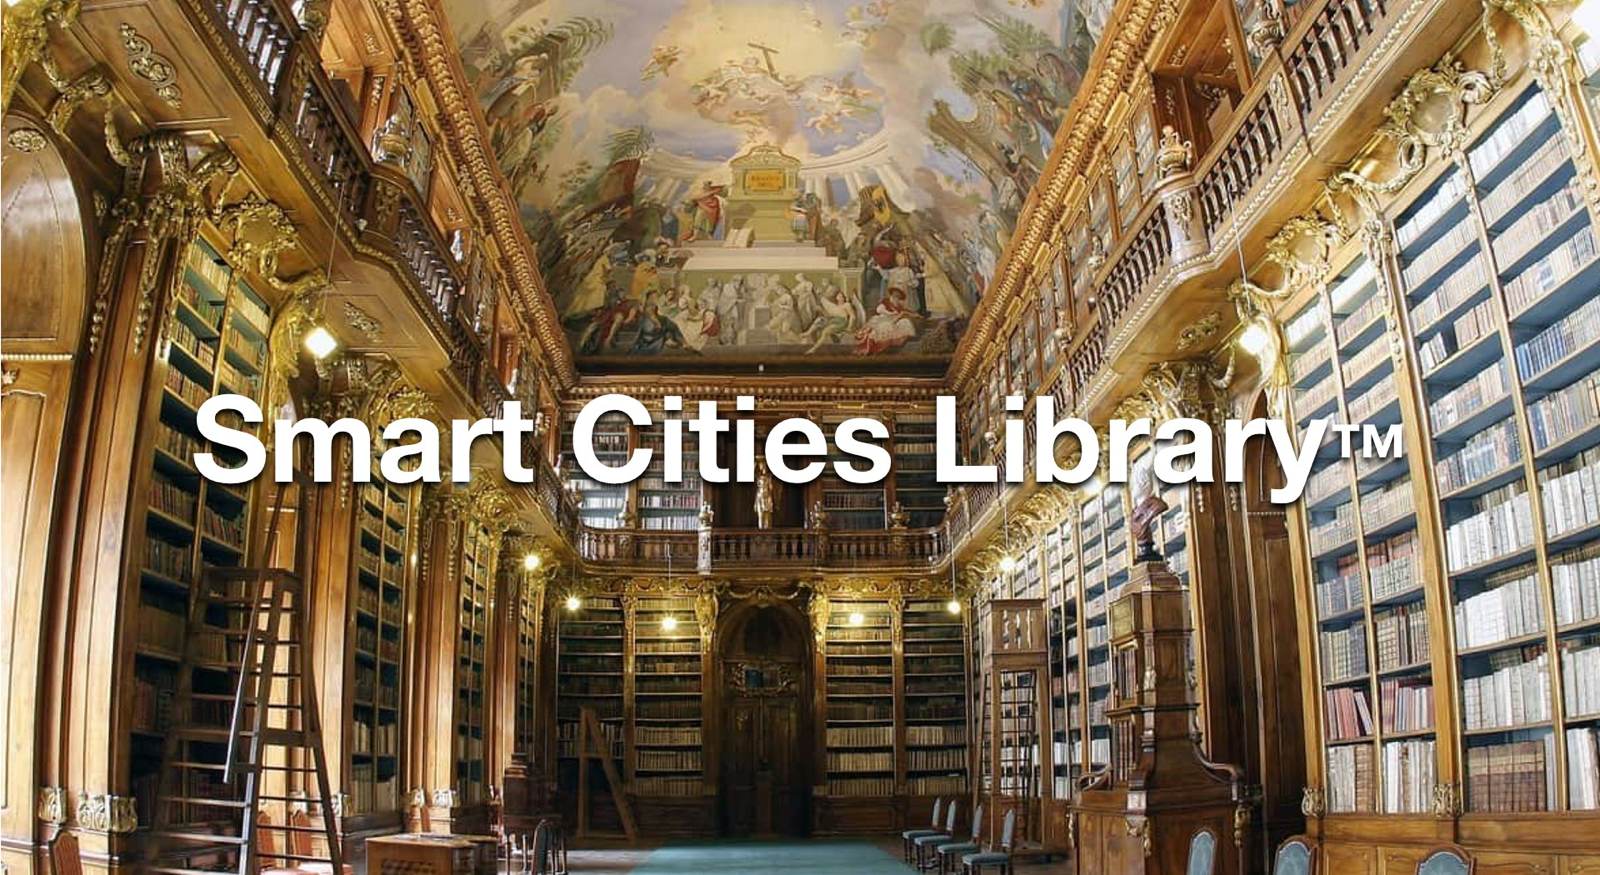 Smart Cities Library™